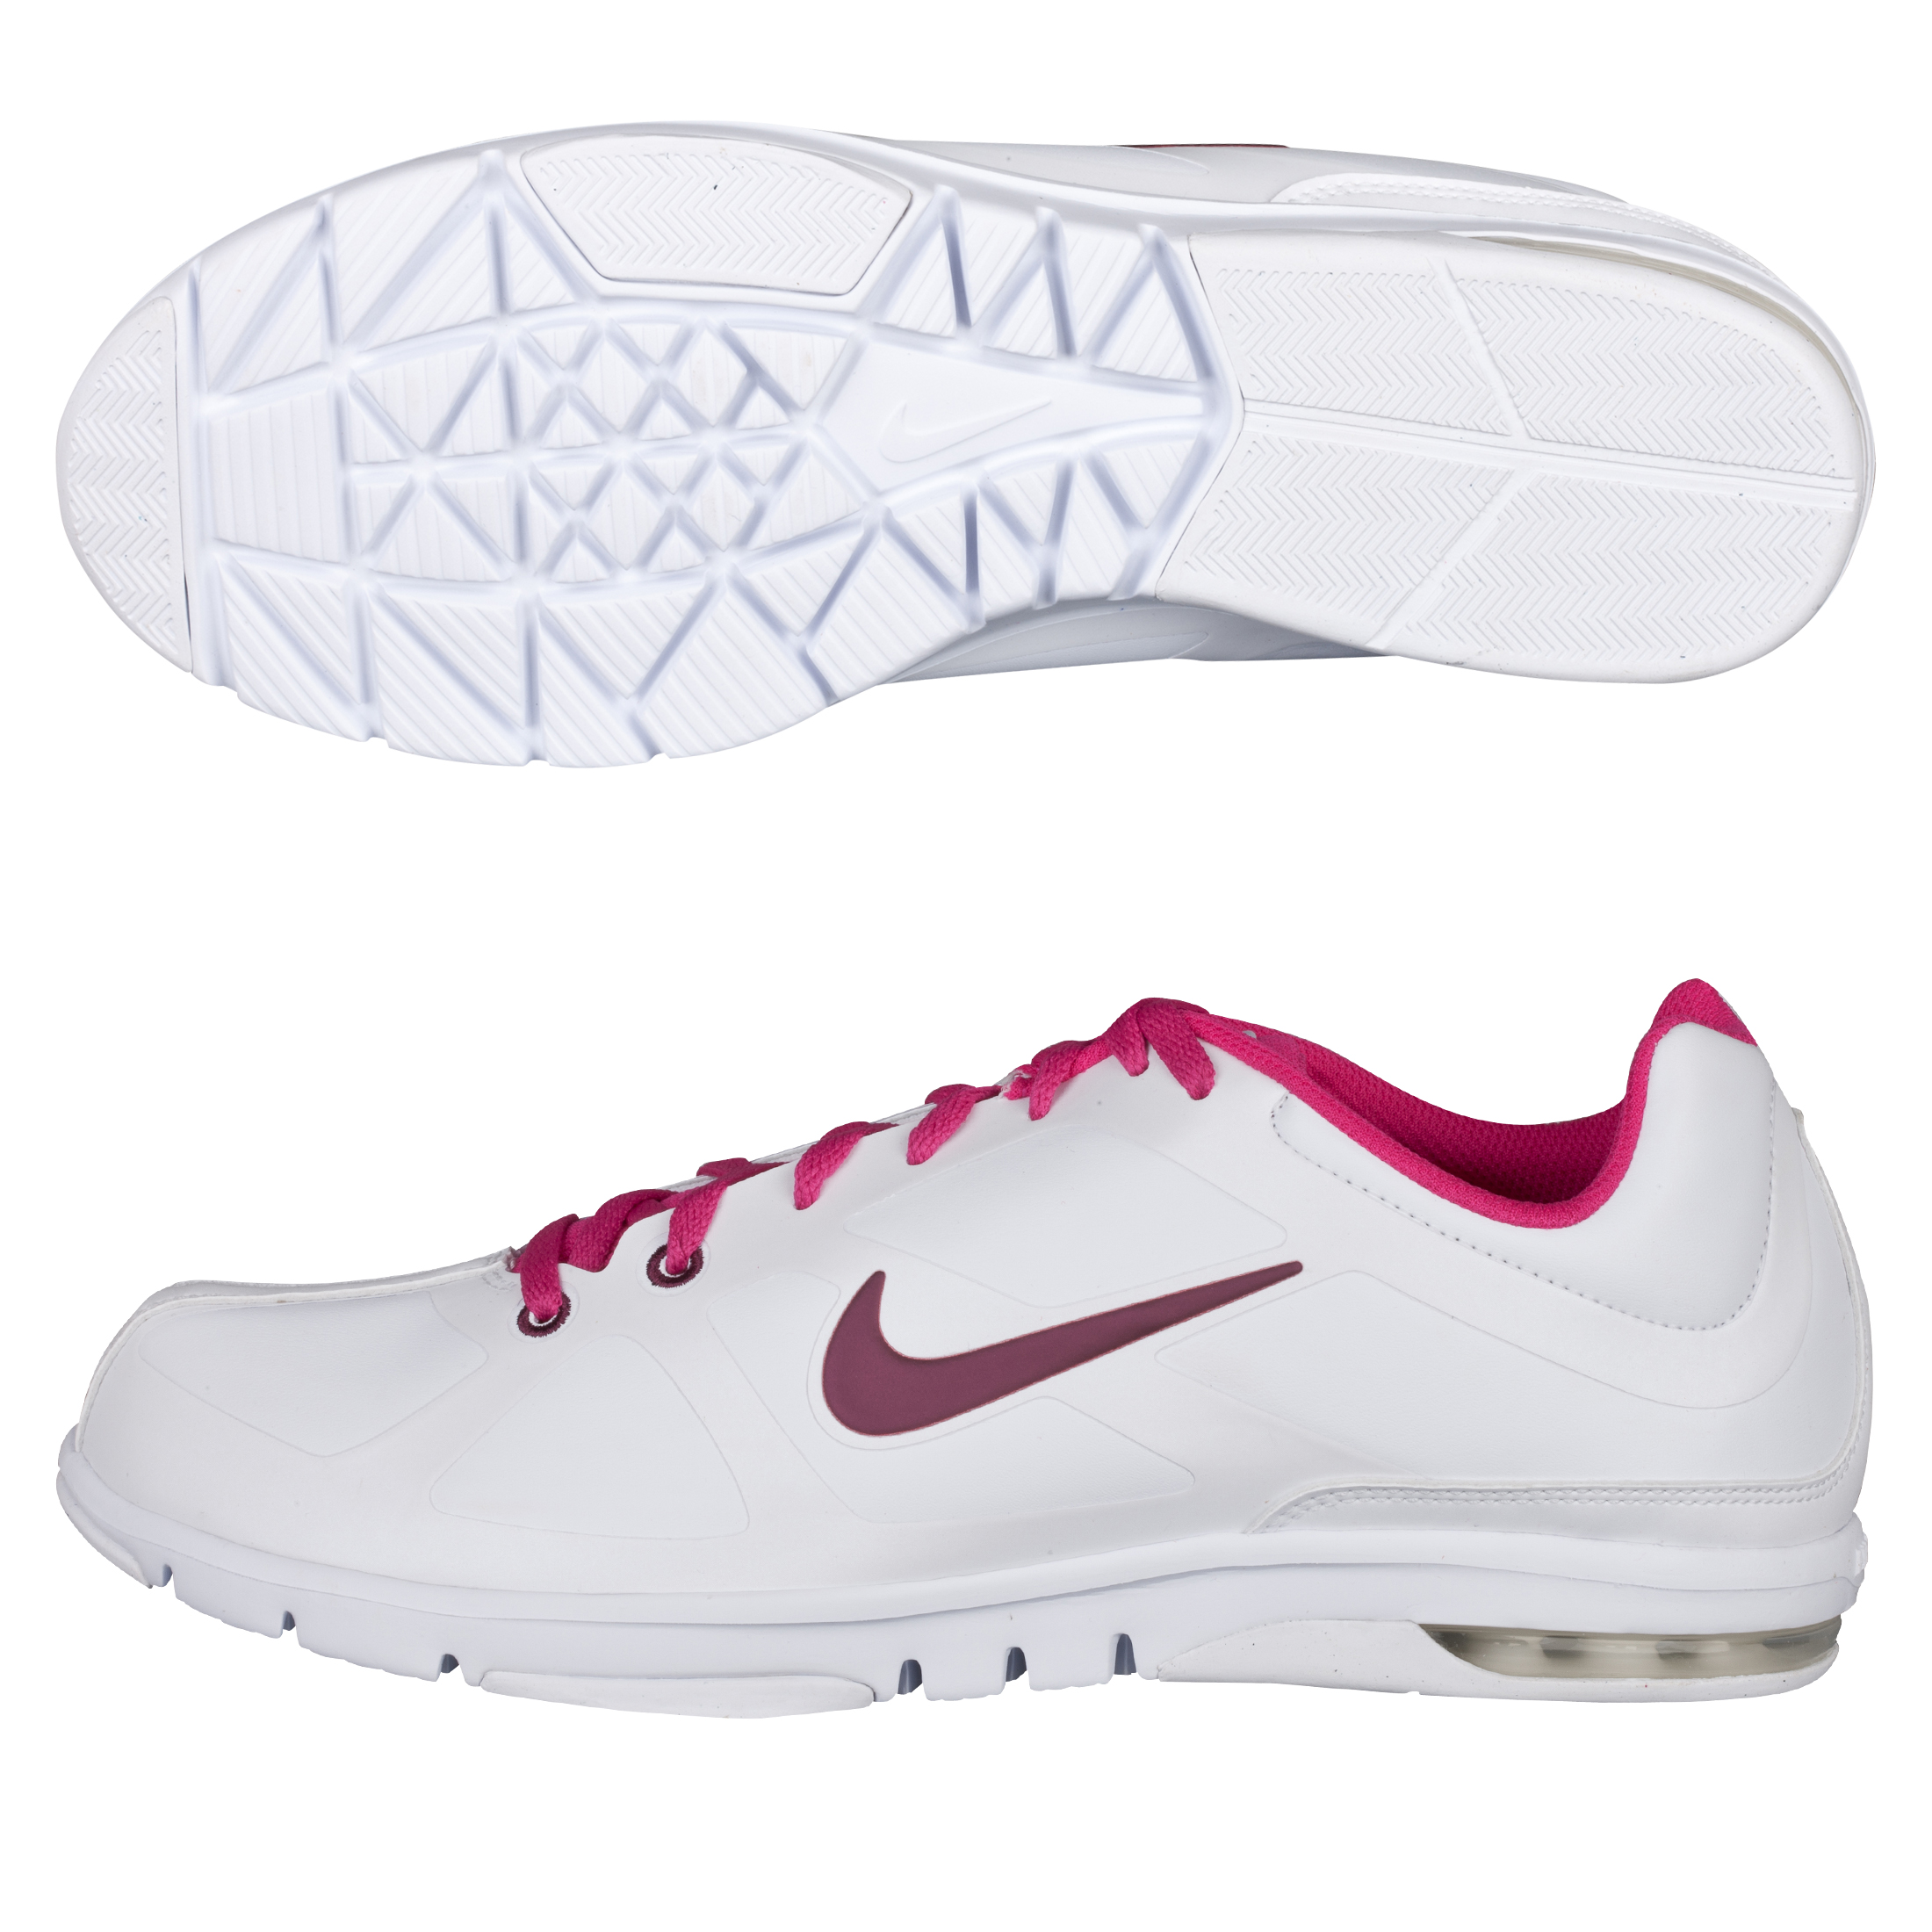 Nike Womens Air Max Trainer - White/Bordeaux-Fireberry - Womens